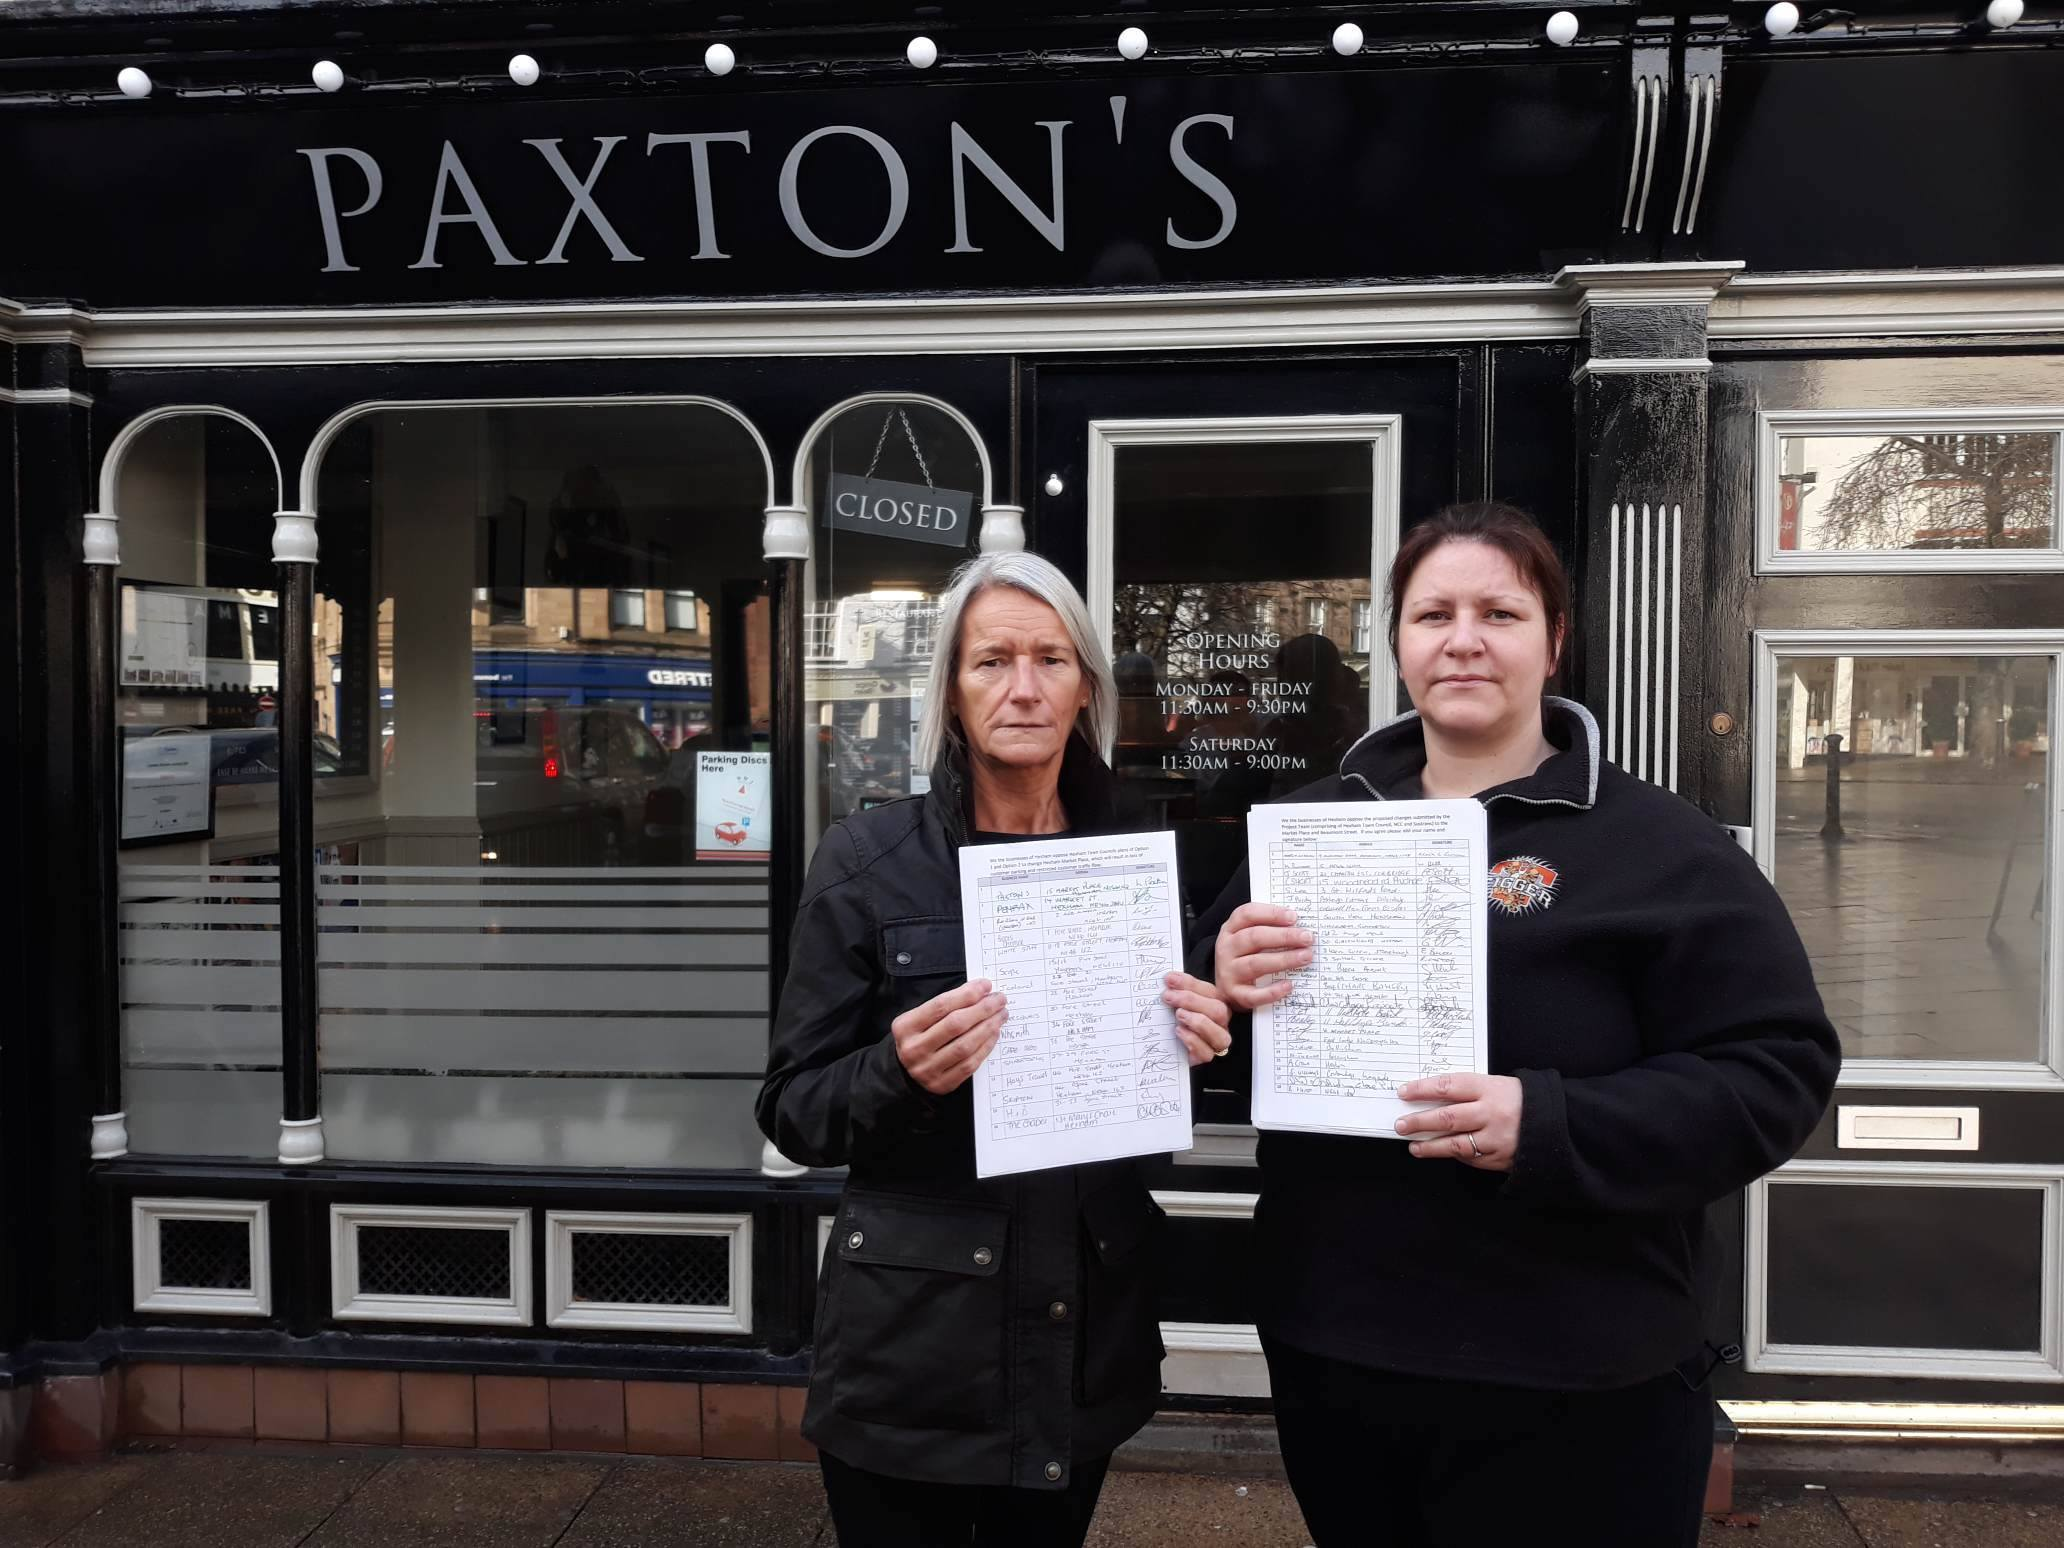 Owners of Paxton's fish and chips Lorna and Natalie Paxton with petitions against proposals for Hexham Market Place.